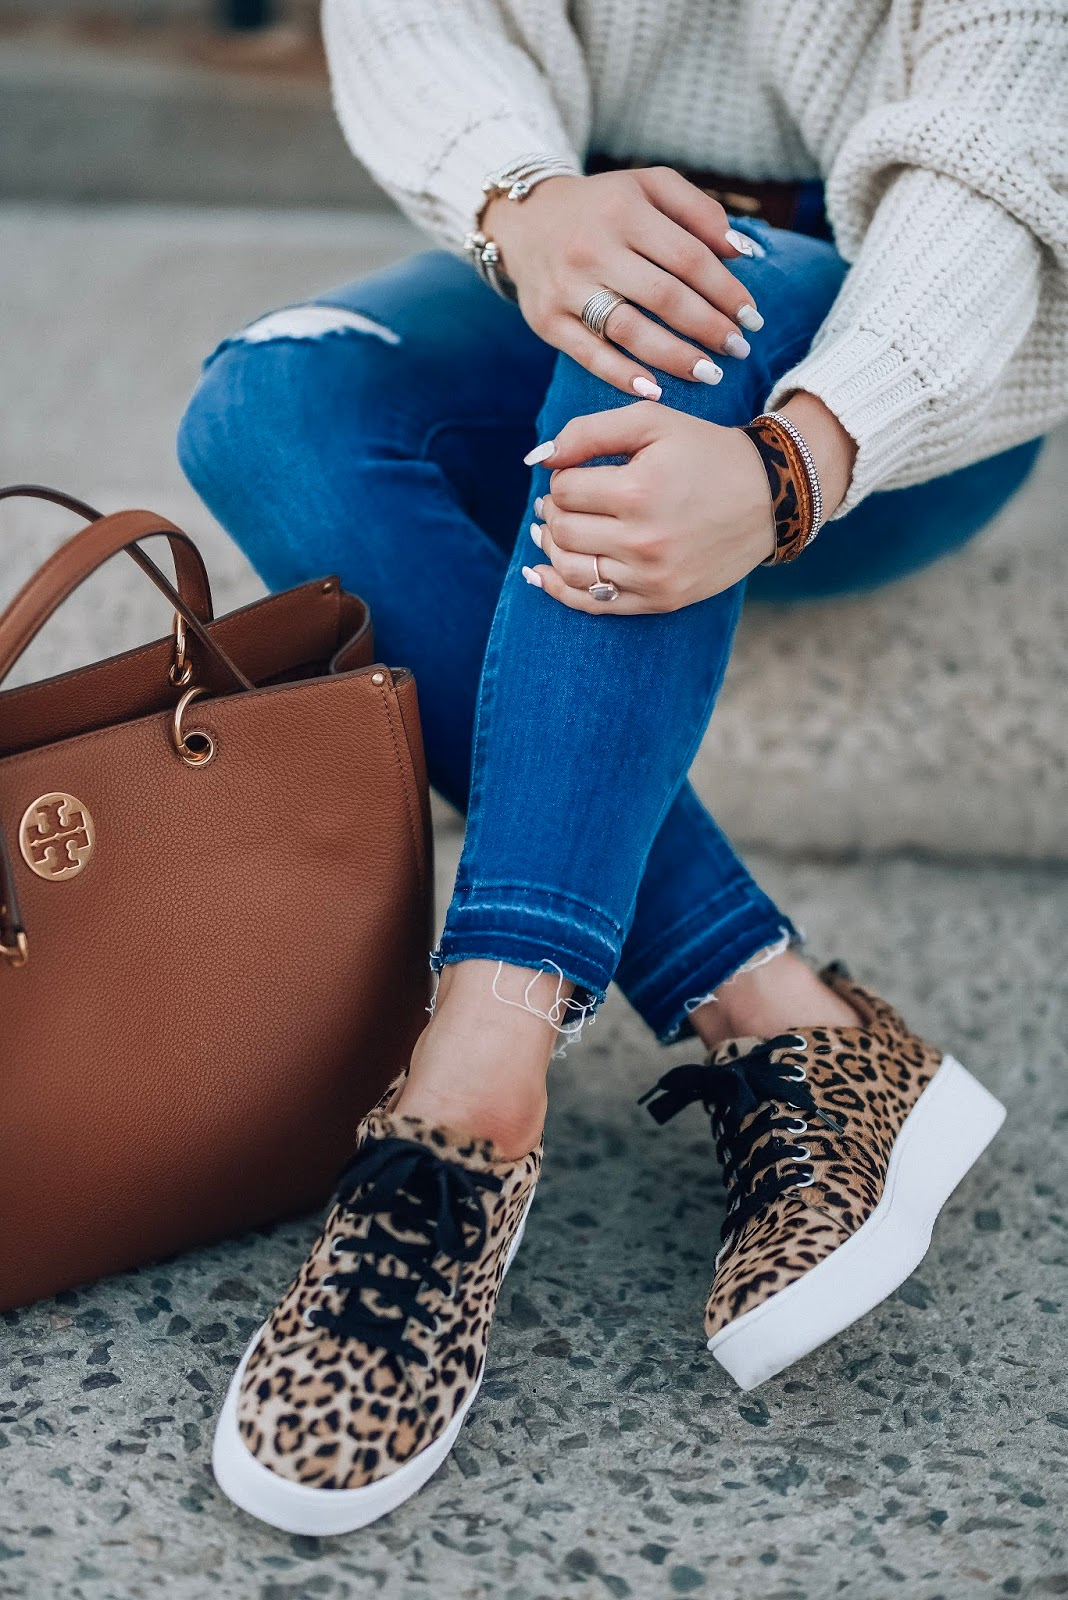 My New Favorite Leopard Sneakers (on sale for $69) + A Pre-Fall Look - Something Delightful Blog